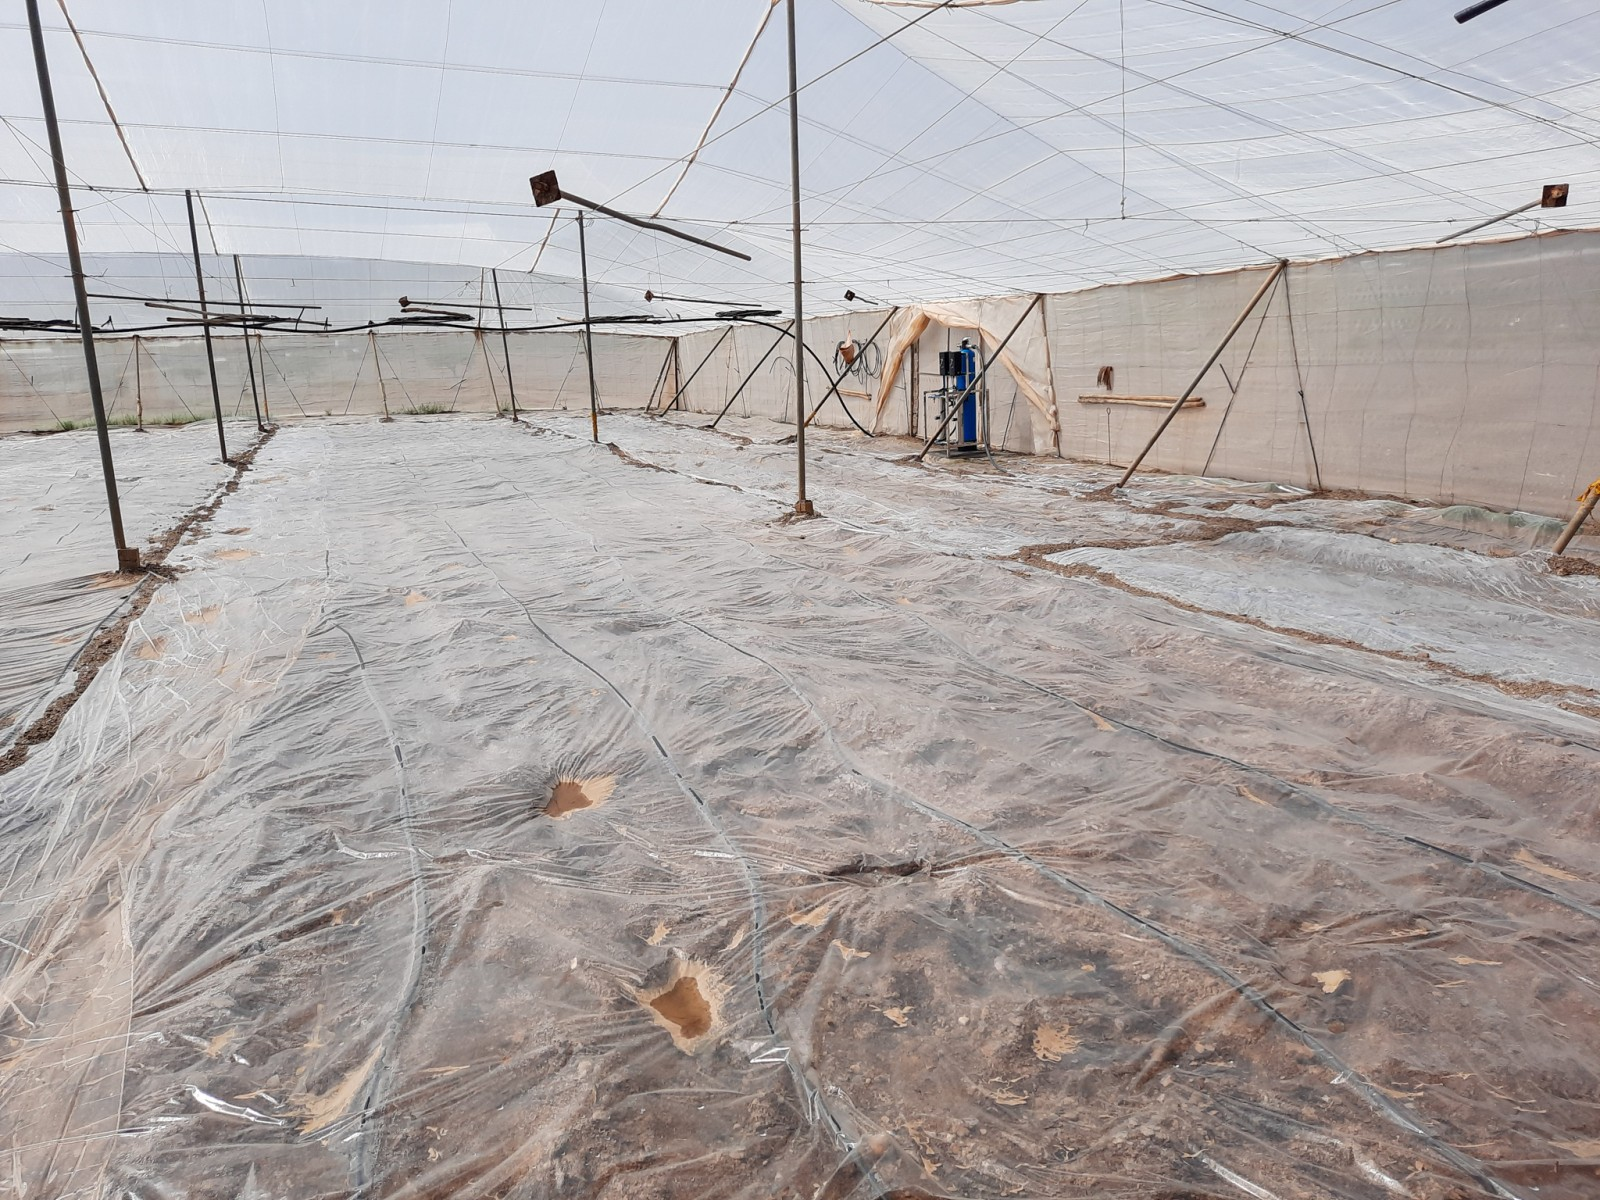 Photo by Fulgencio - Inside the greenhouse where transparent plastics are placed on the floor